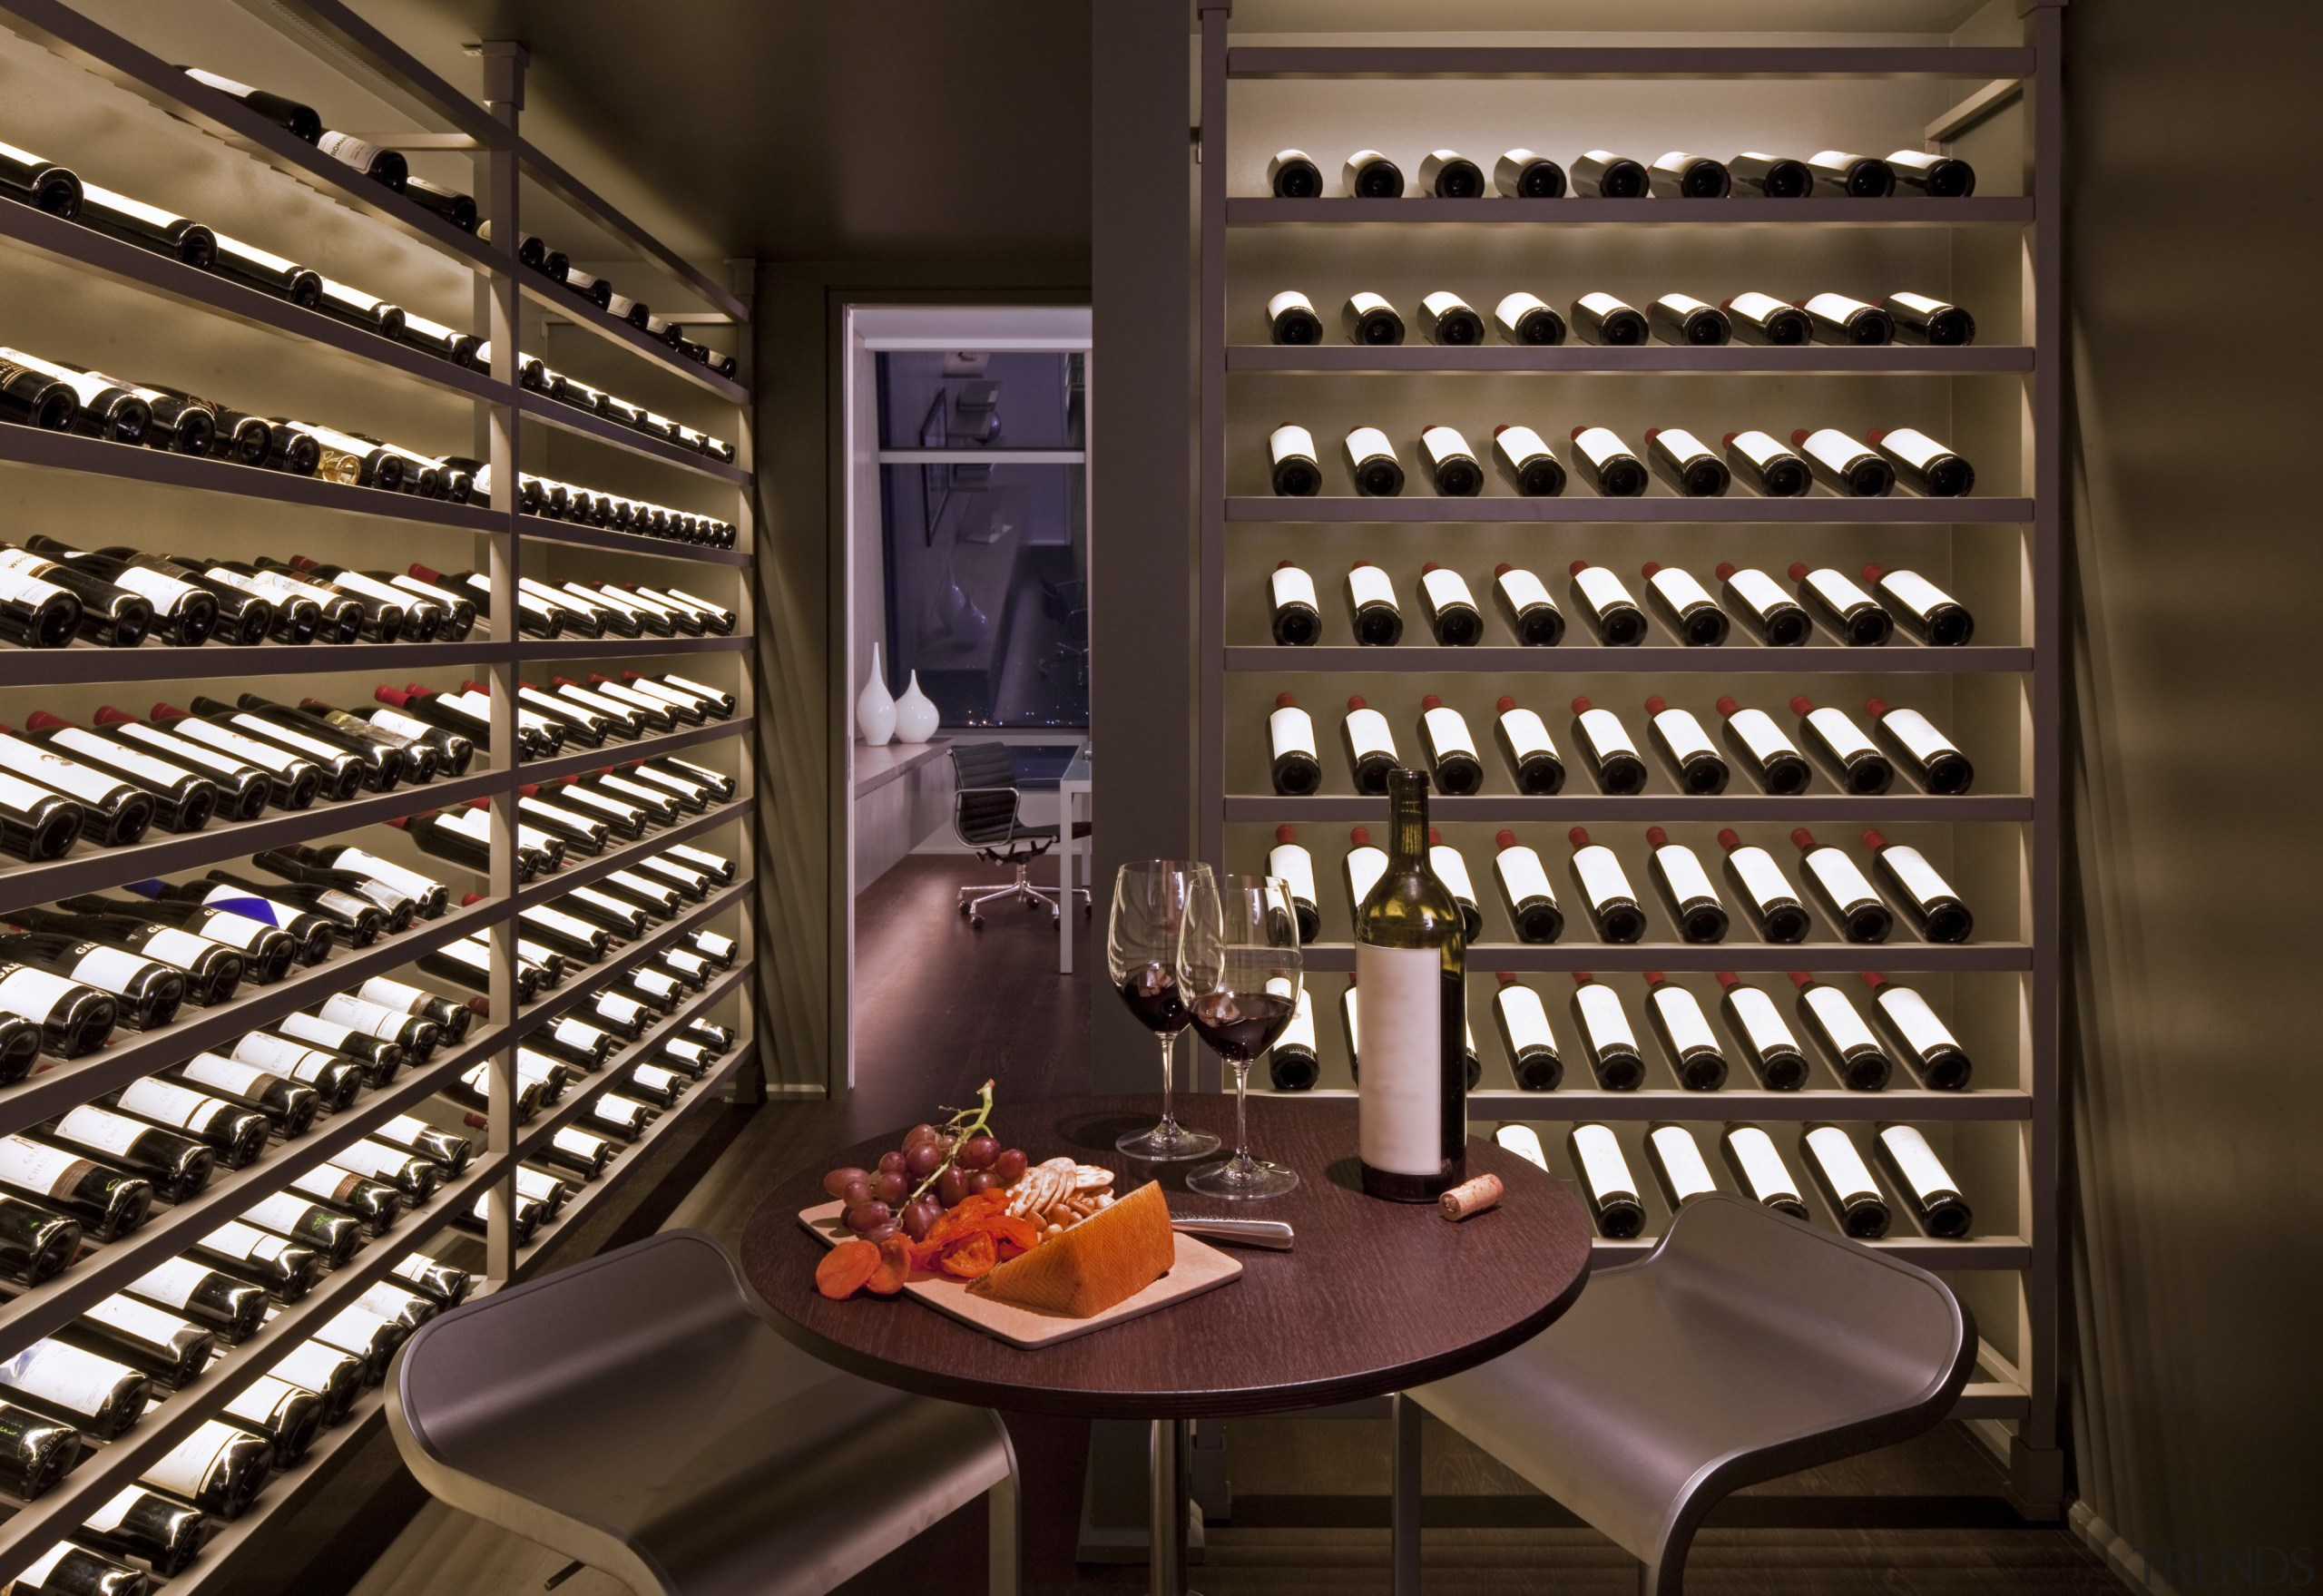 The climate-controlled wine cellar features custom, backlit wine interior design, wine cellar, winery, brown